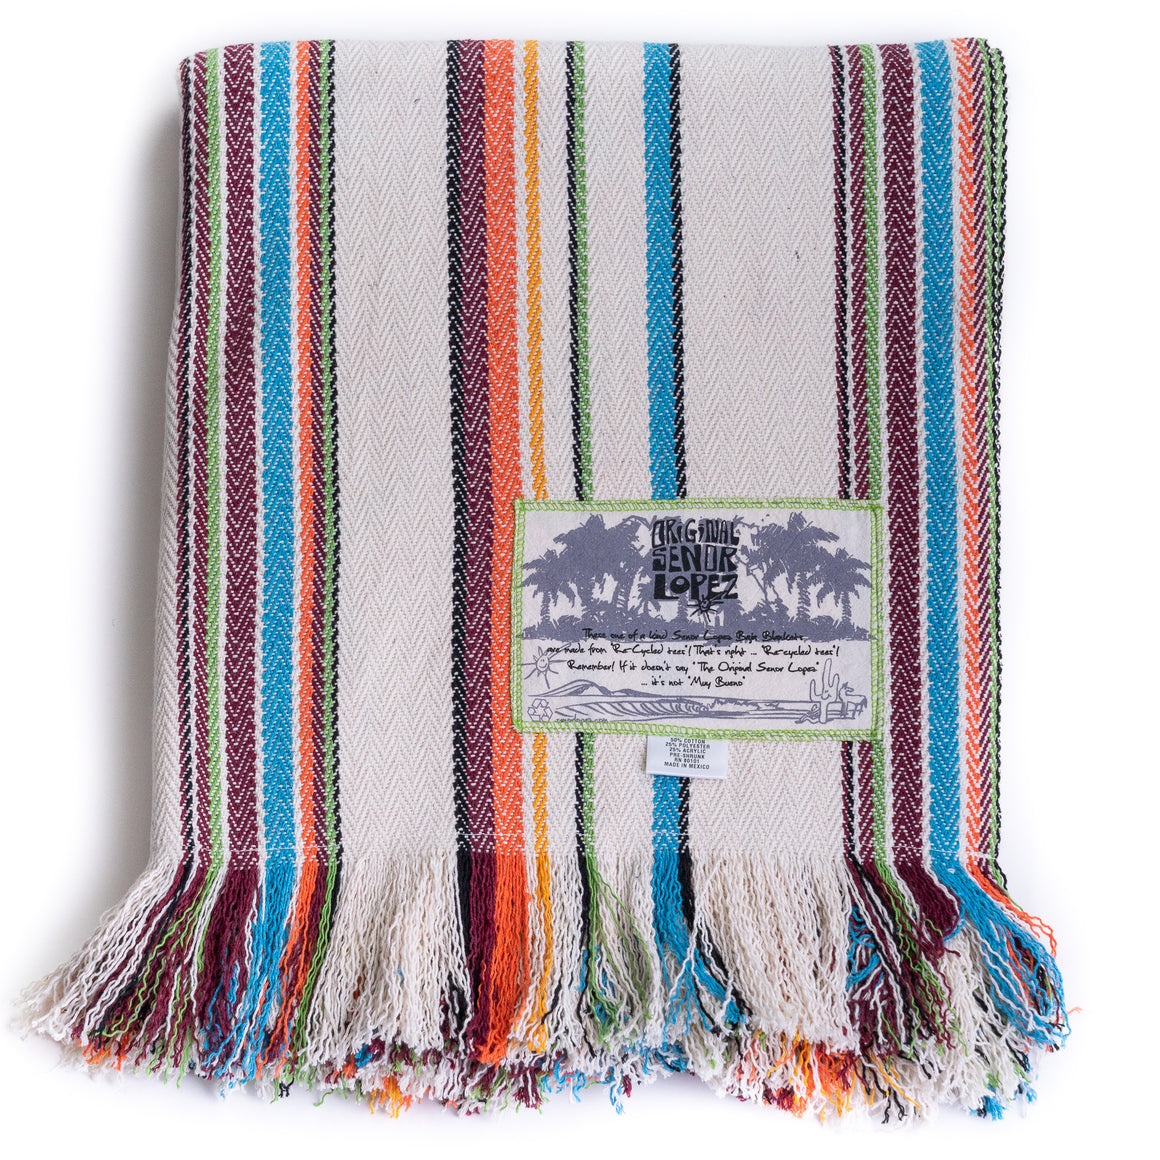 CALIFORNIA OLAS BLANKET